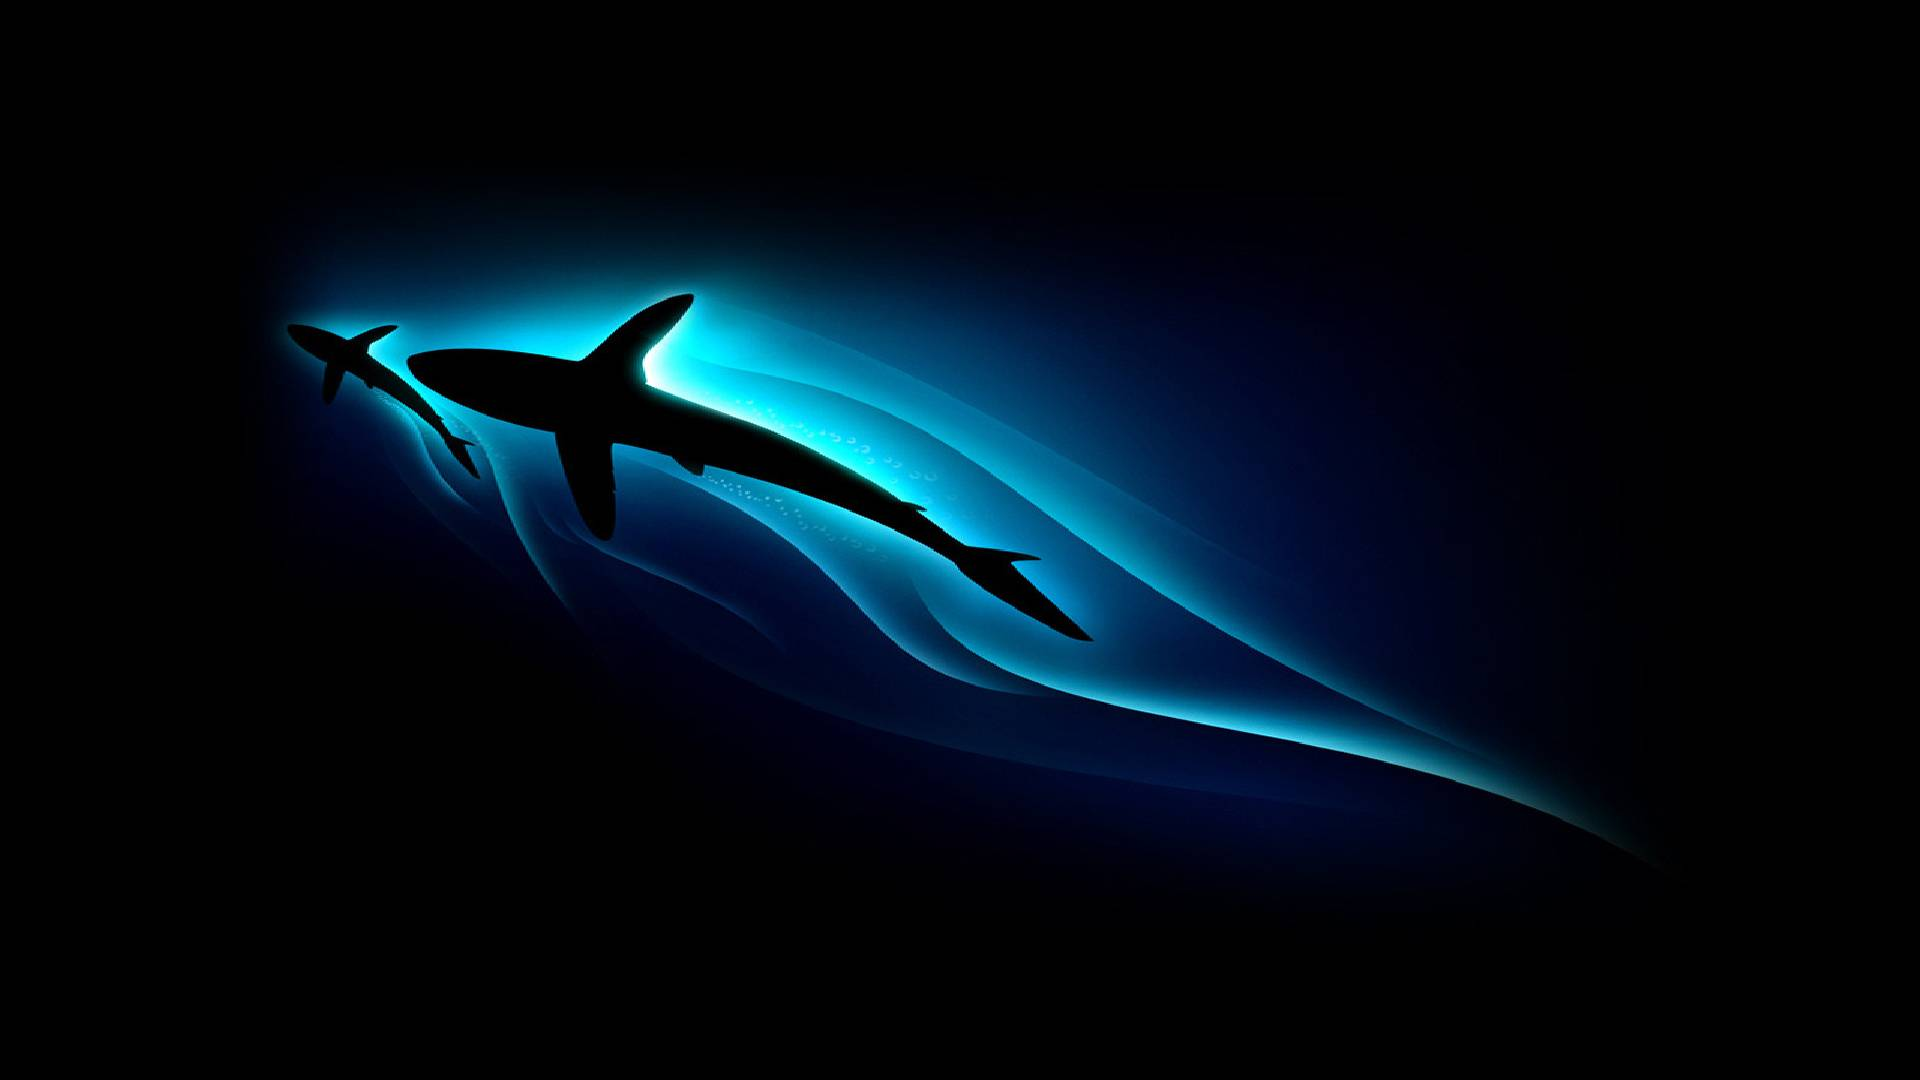 Cool Wallpapers For Download